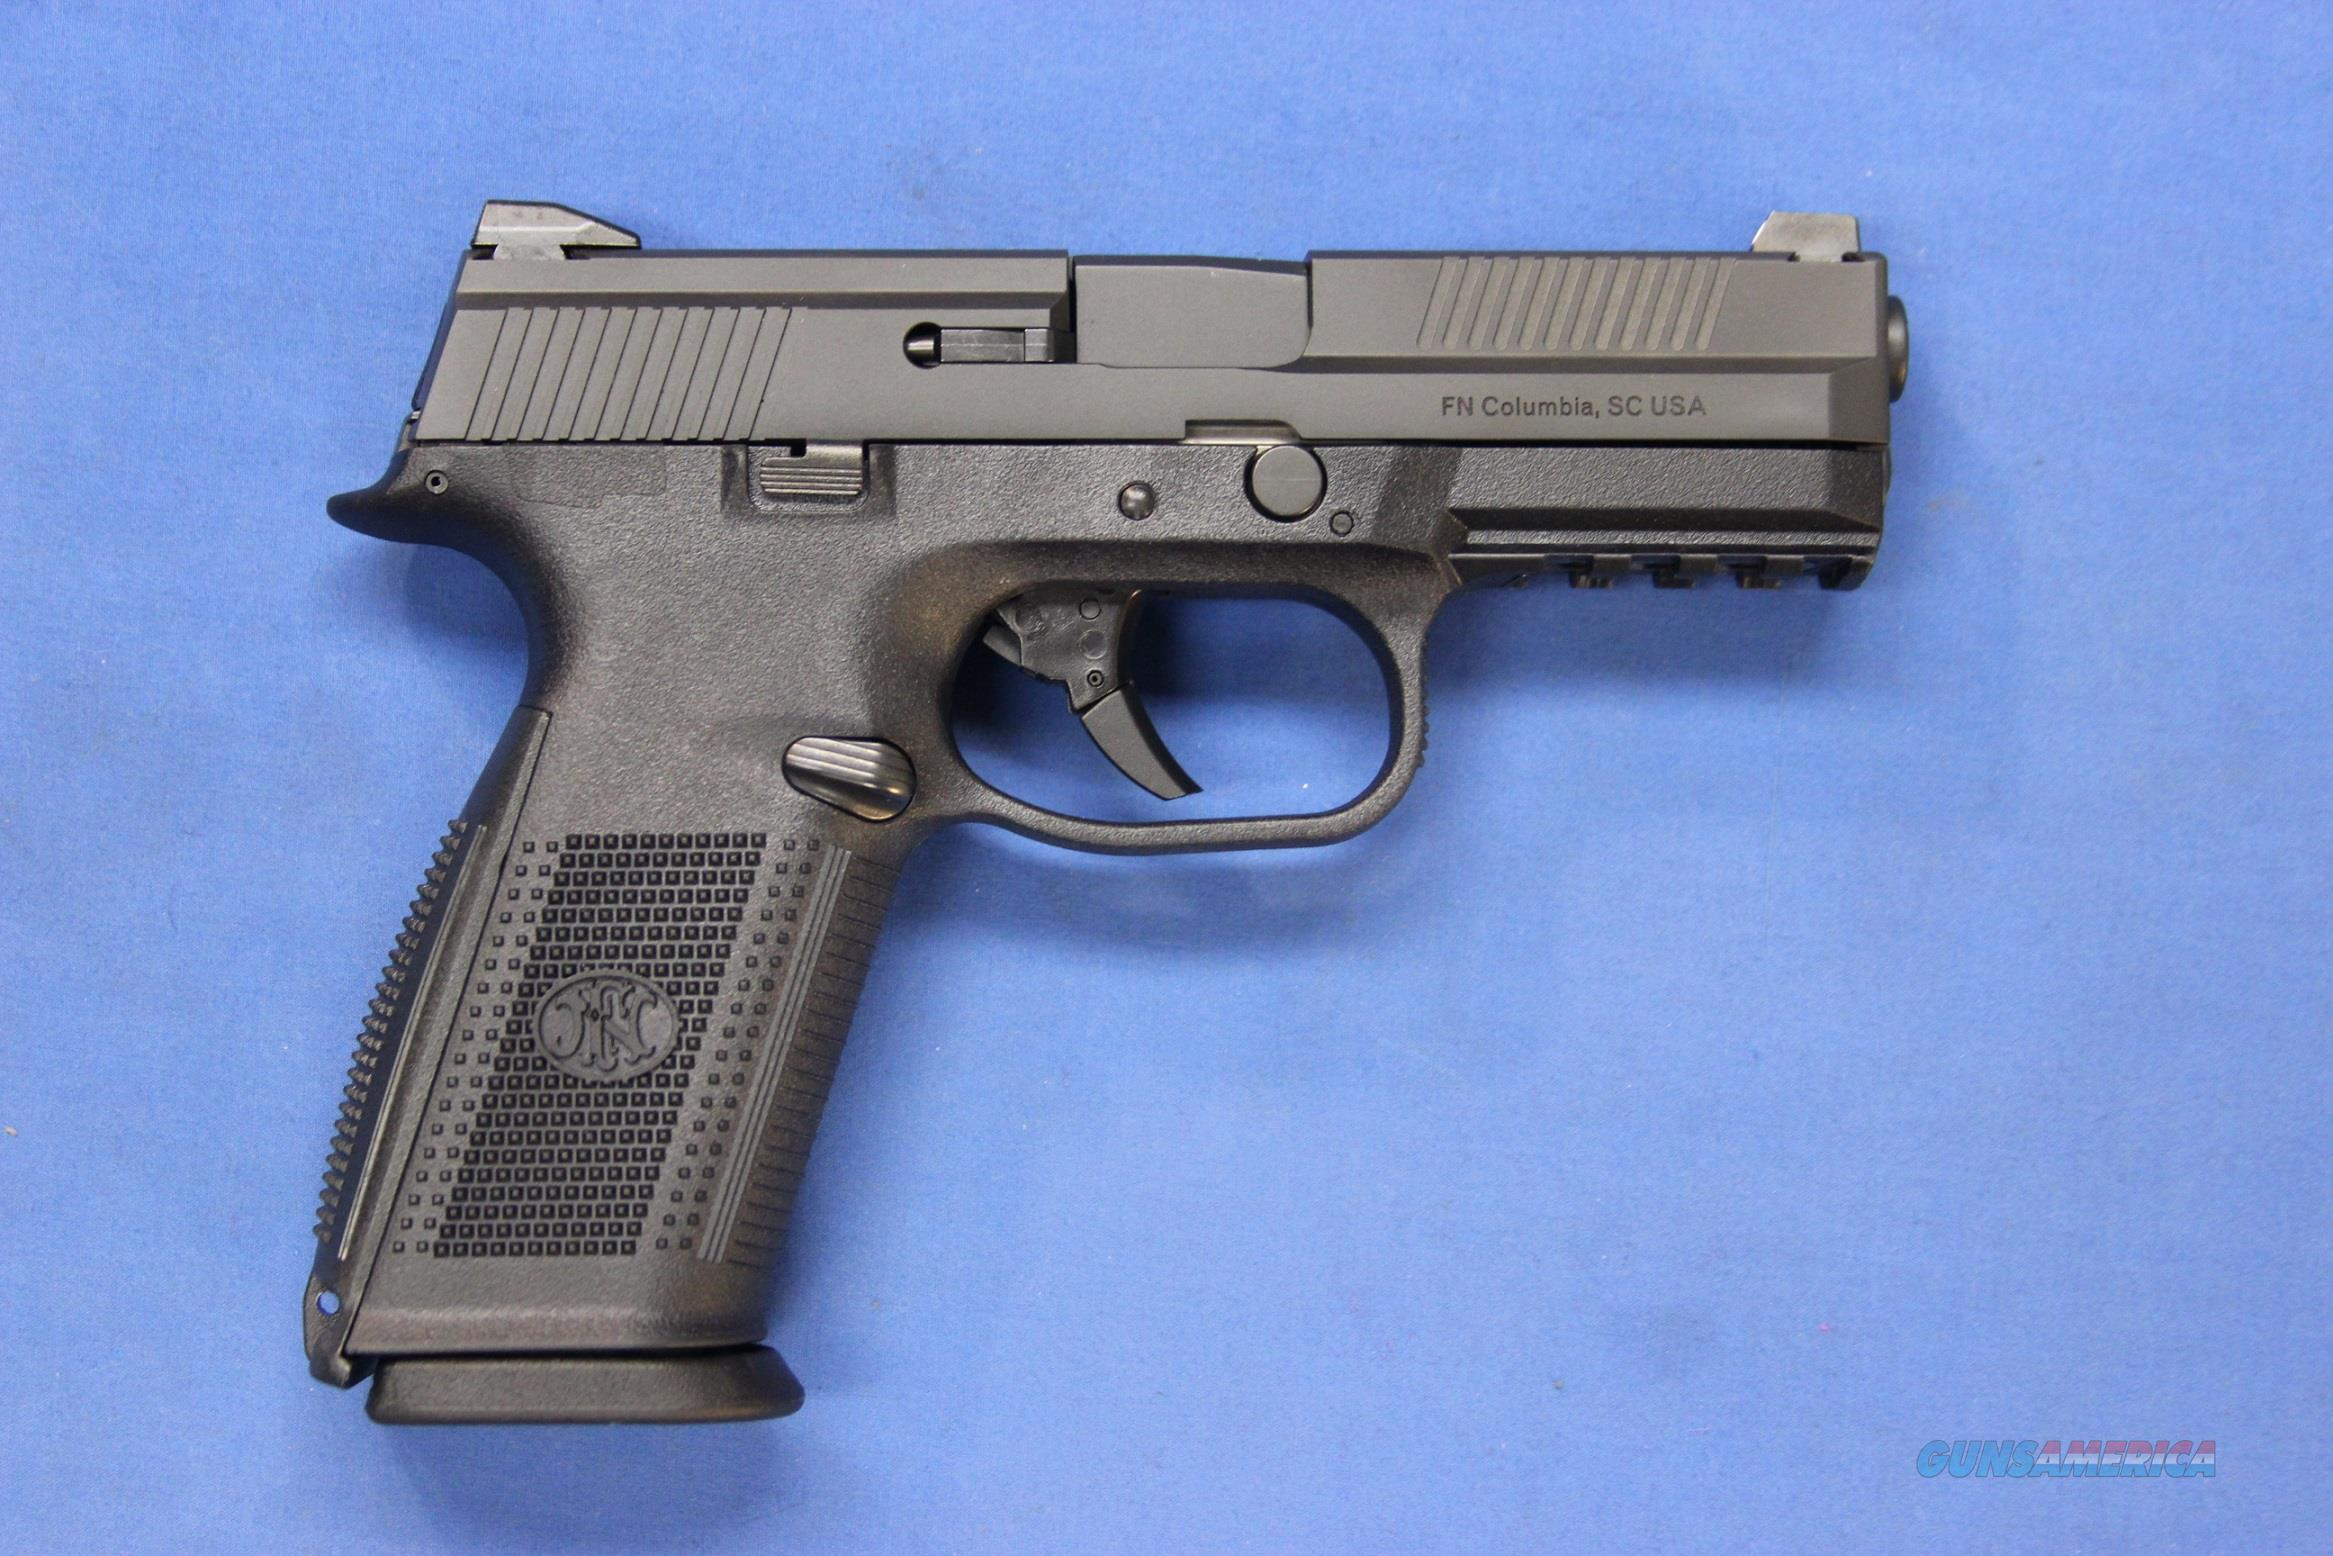 FNH USA MODEL FNS-9 9mm - NEW IN BOX w/3 MAGS  Guns > Pistols > FNH - Fabrique Nationale (FN) Pistols > FNS